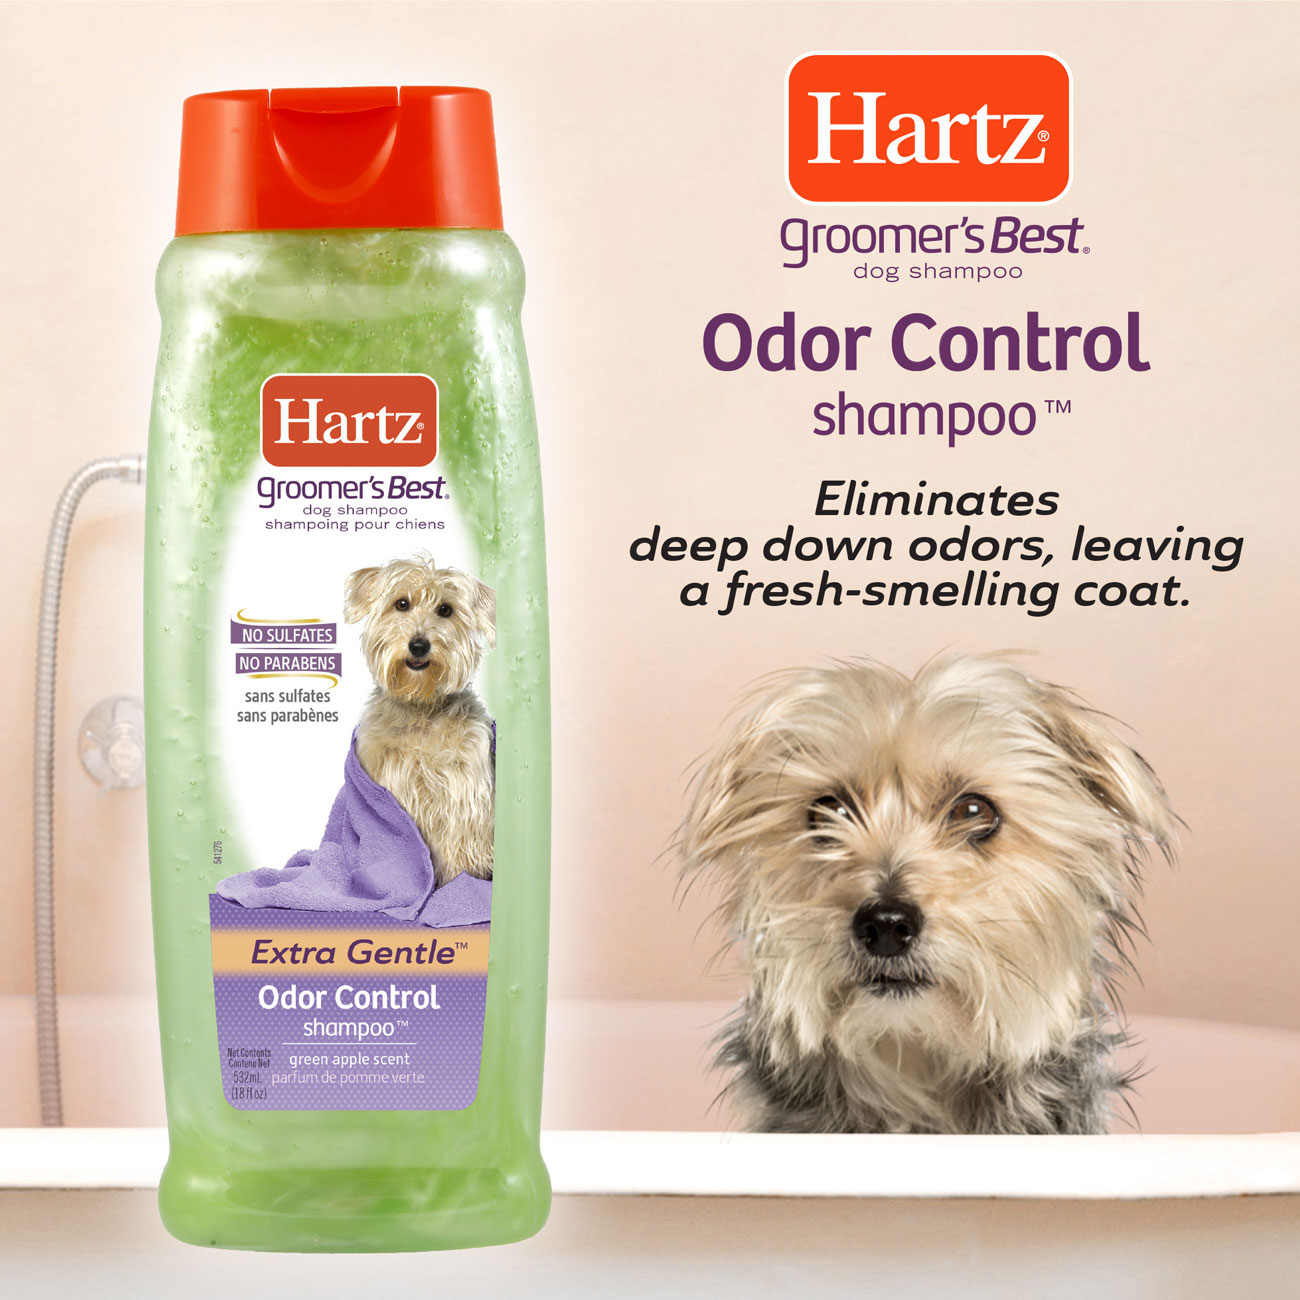 Hartz groomers best Odor control shampoo for dogs. Eliminates deep down odors, leaving a fresh-smelling coat.